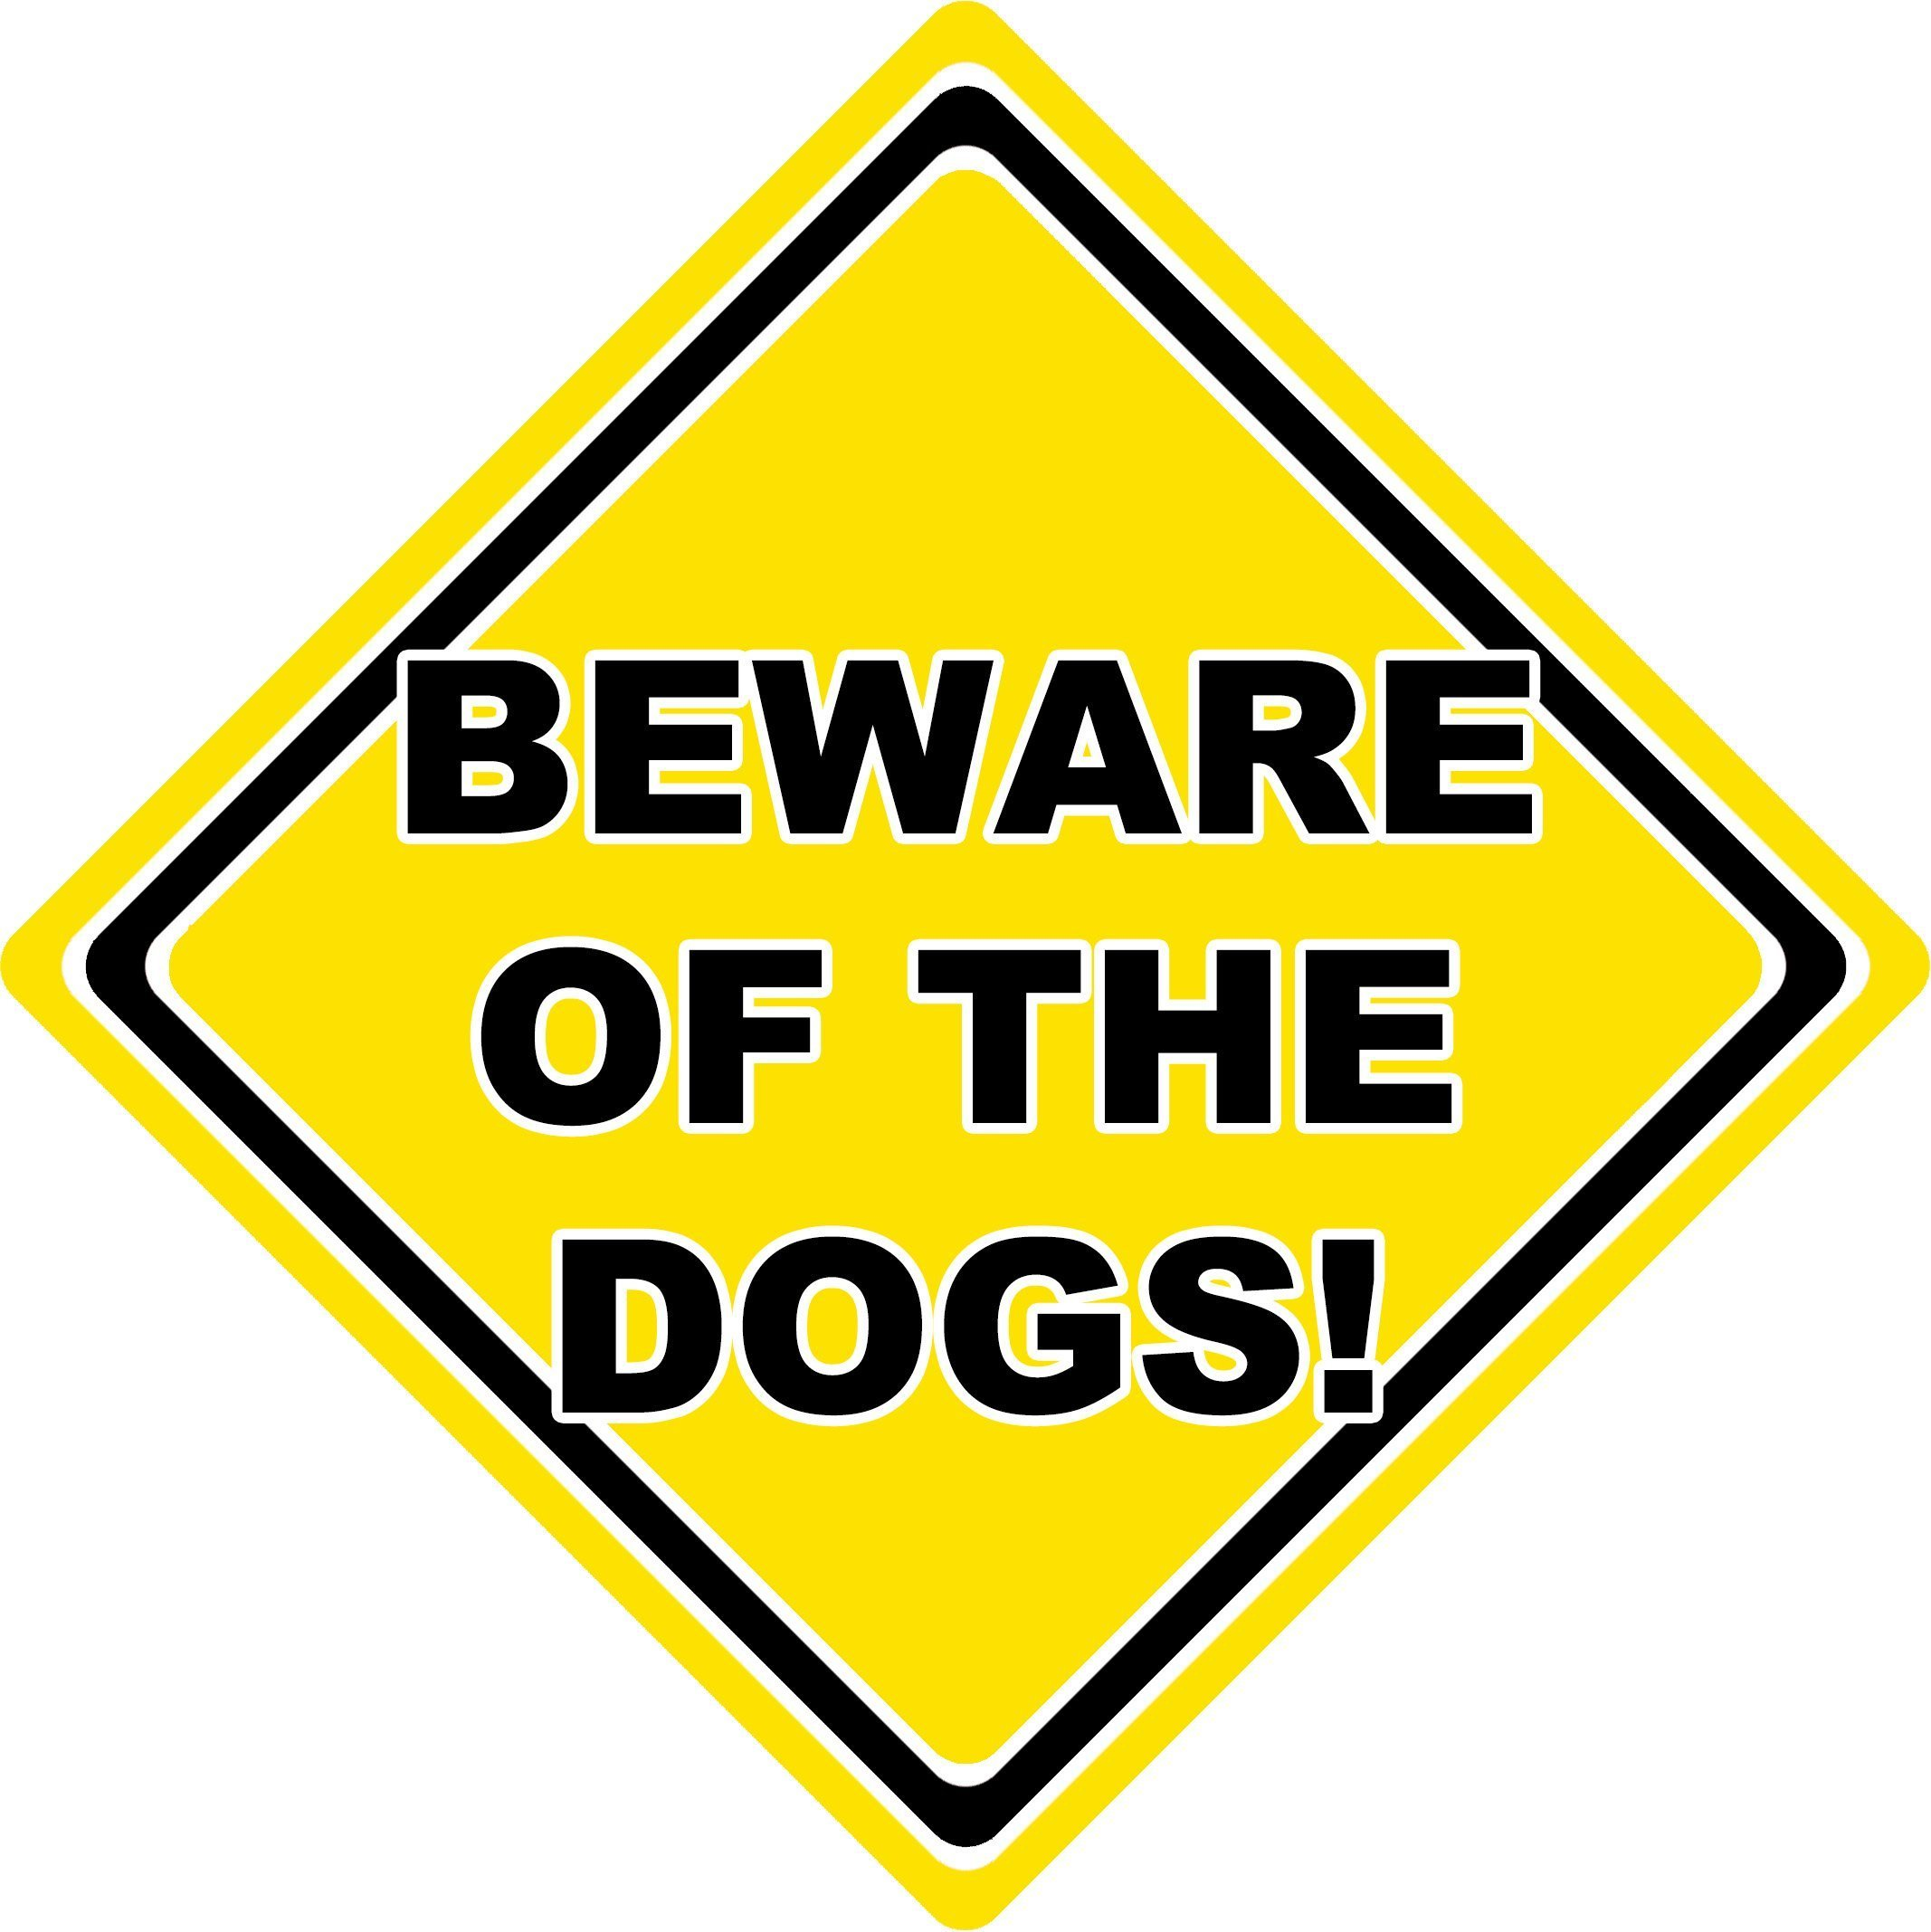 Beware of the Dogs Car Sign